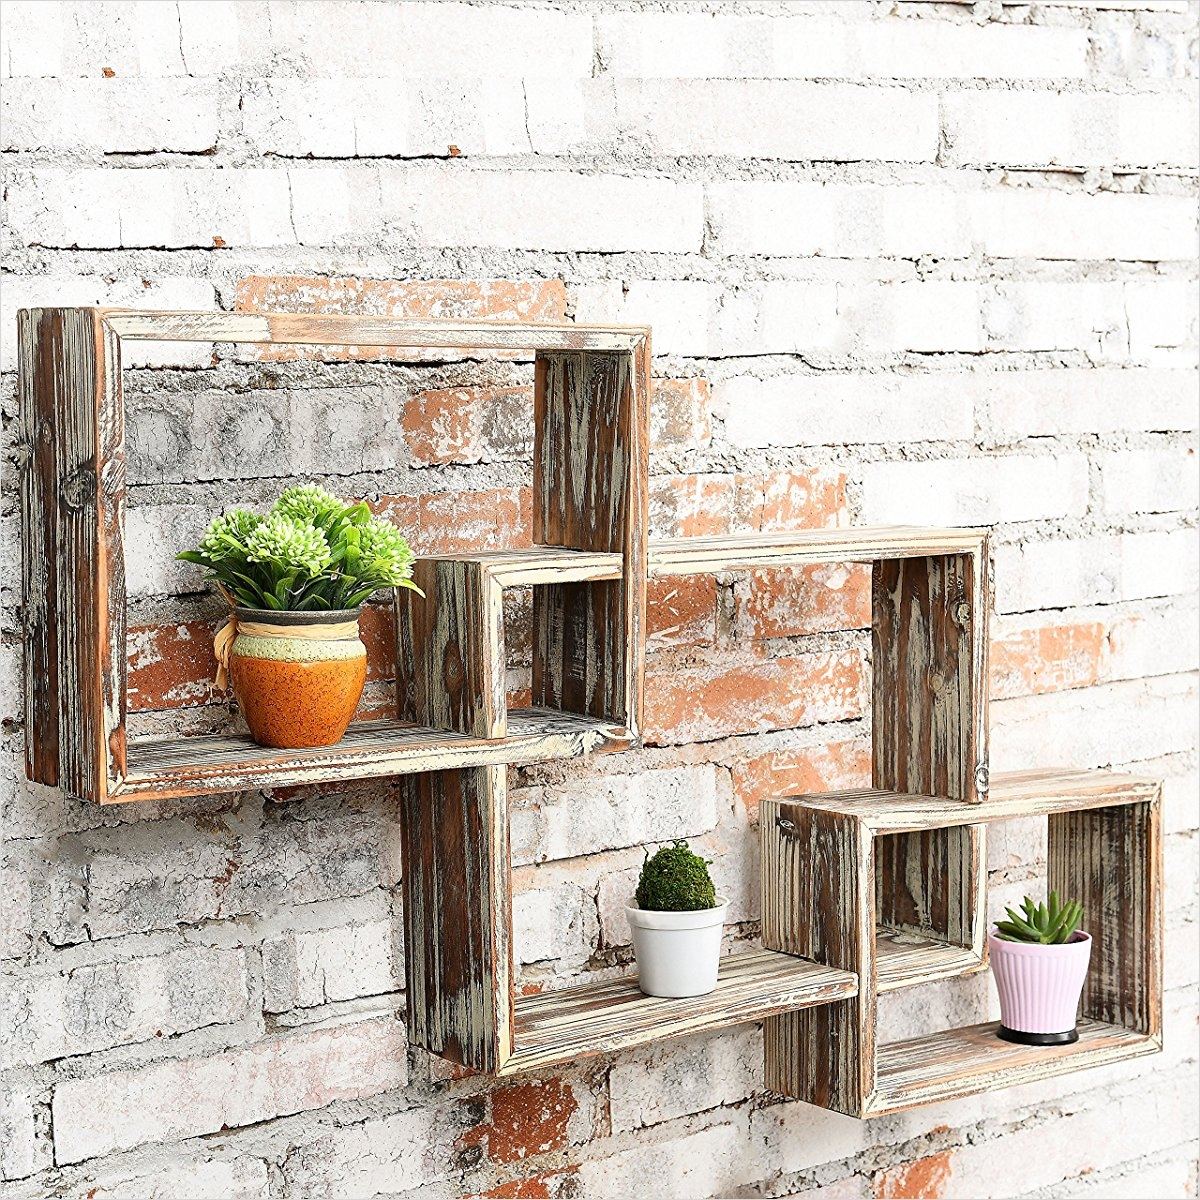 45 Creative Rustic Wall Mounted Bookshelves 49 Country Rustic 3 Tier Floating Box Shelves Decorative Wood Wall Mounted Display Shelf Brown 5